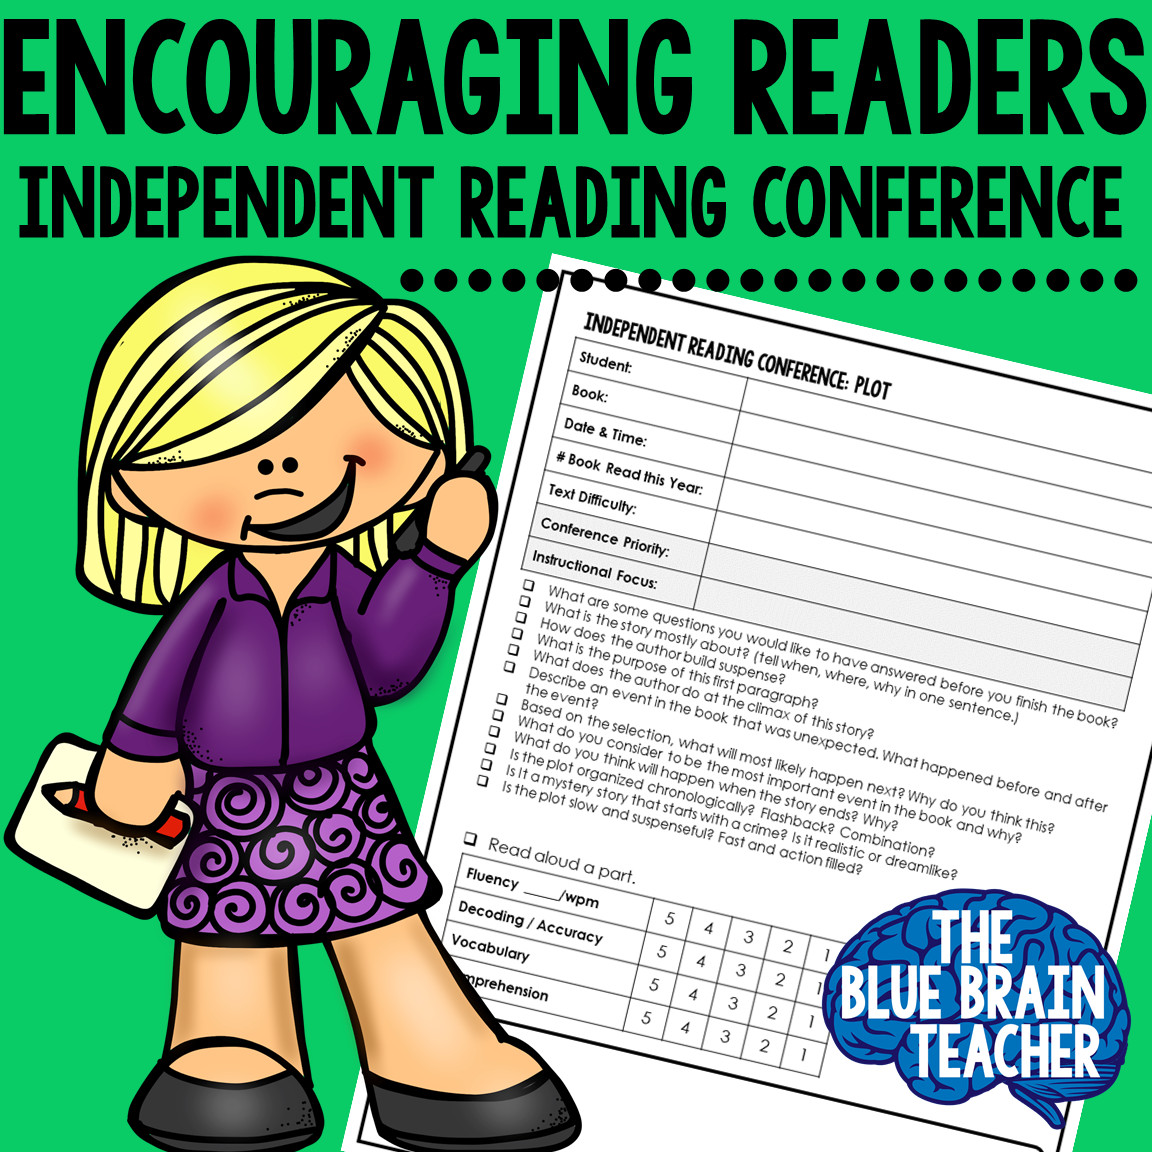 Independent Reading Conference Forms